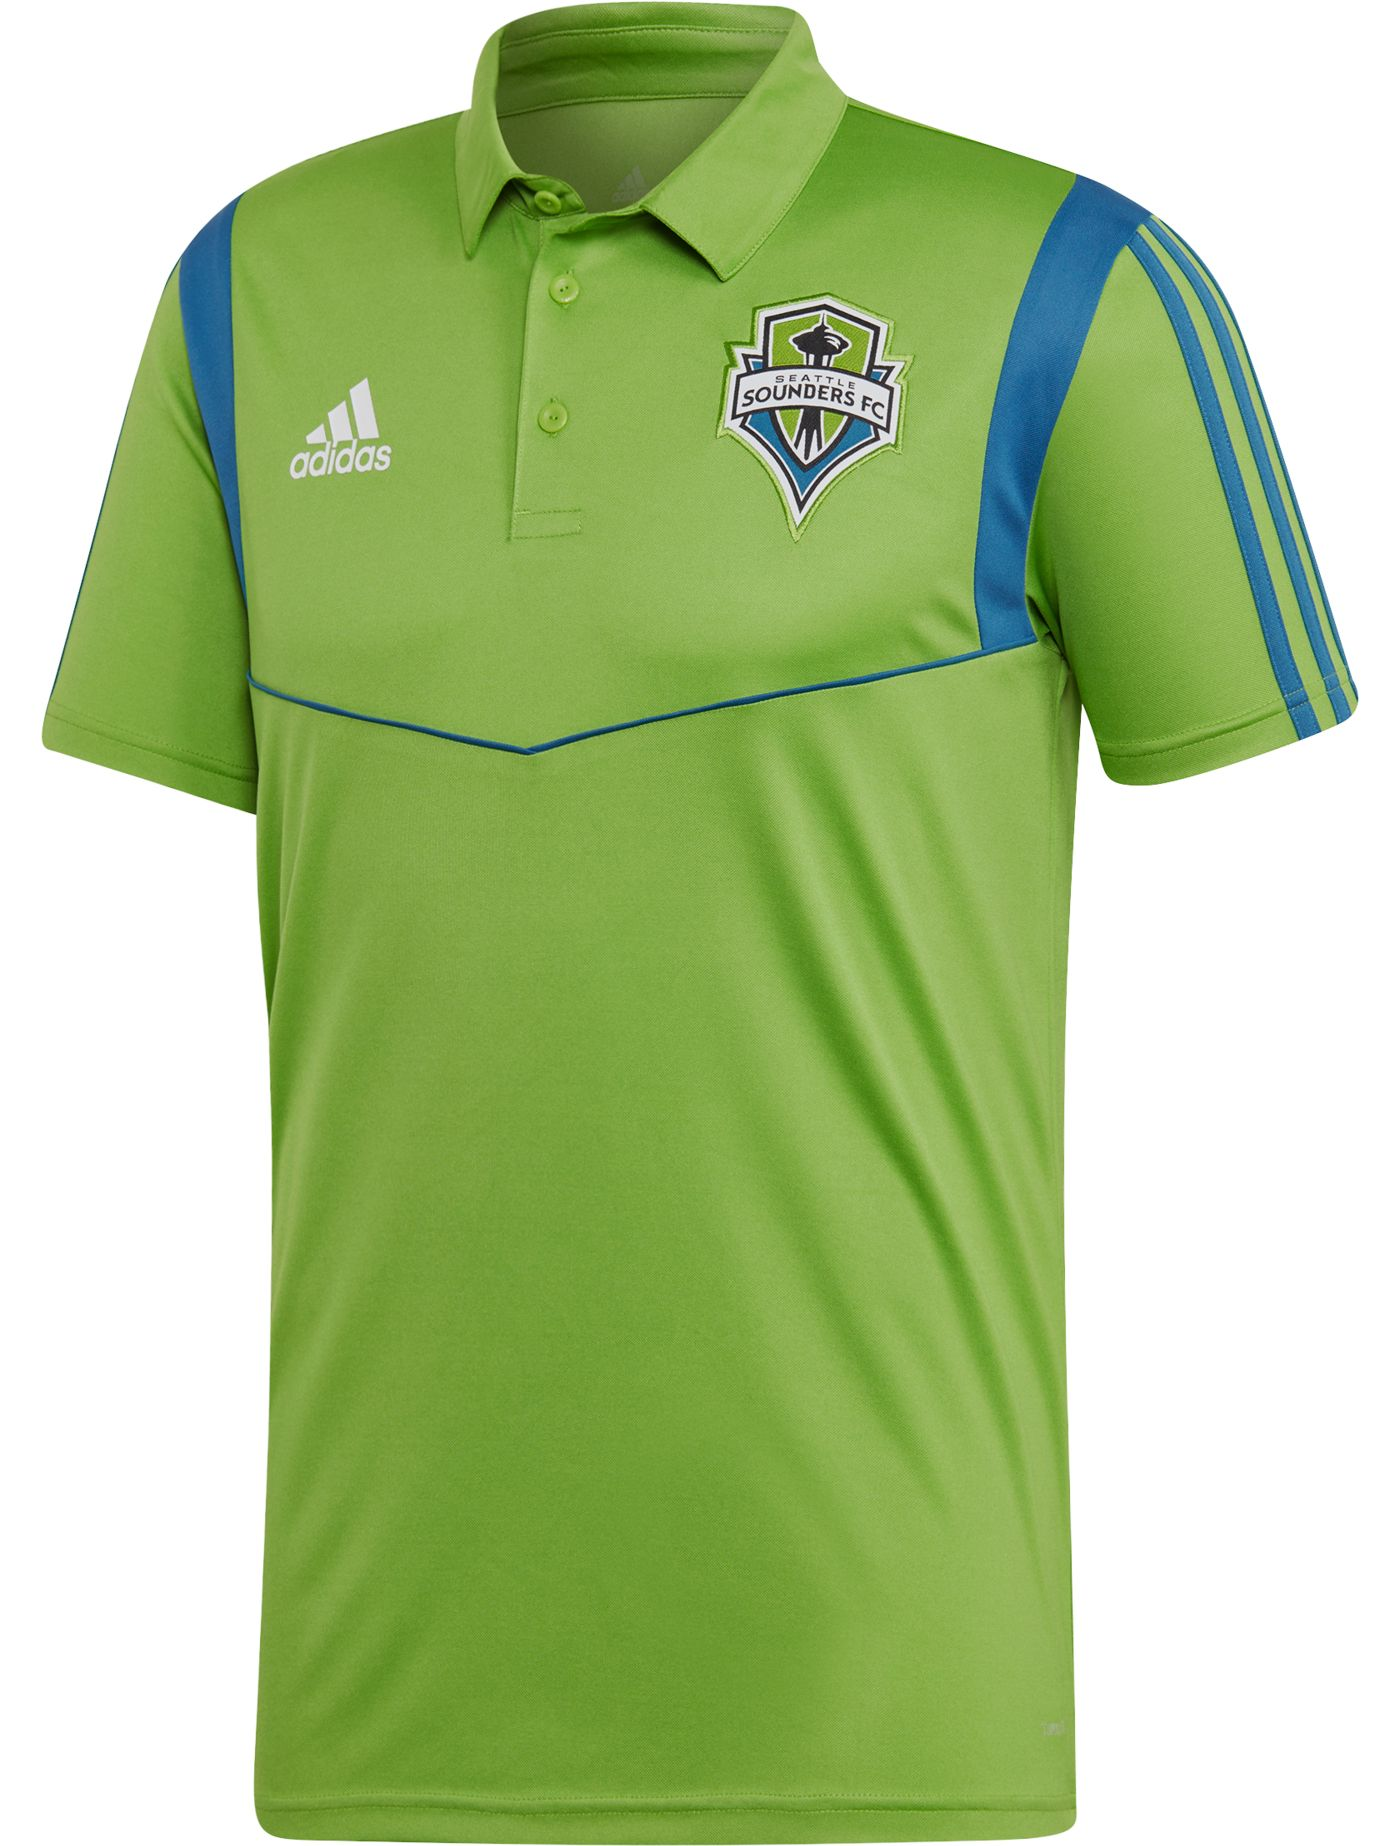 adidas Men's Seattle Sounders Coaches Green Performance Polo